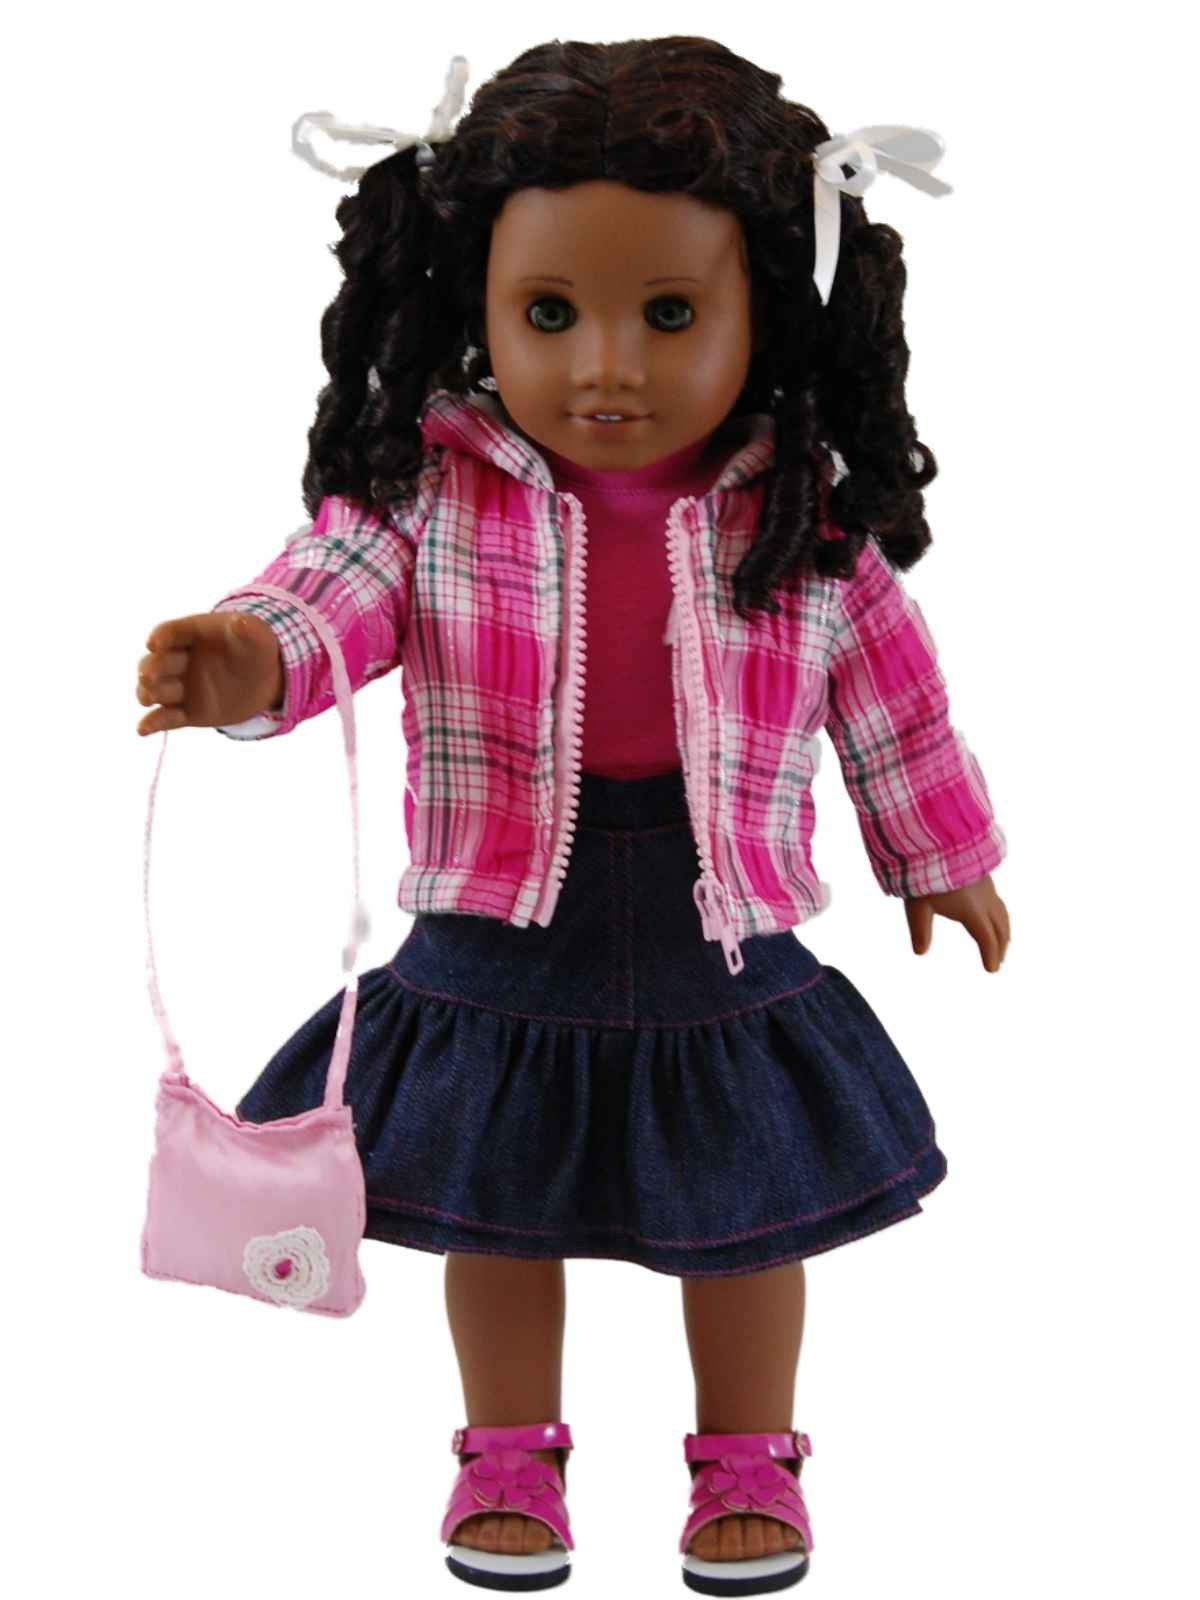 Best Of Plaid Jacket and Denim Doll Clothes Skirt Set for 18 American Girl Doll Skirts Of Incredible 50 Ideas American Girl Doll Skirts